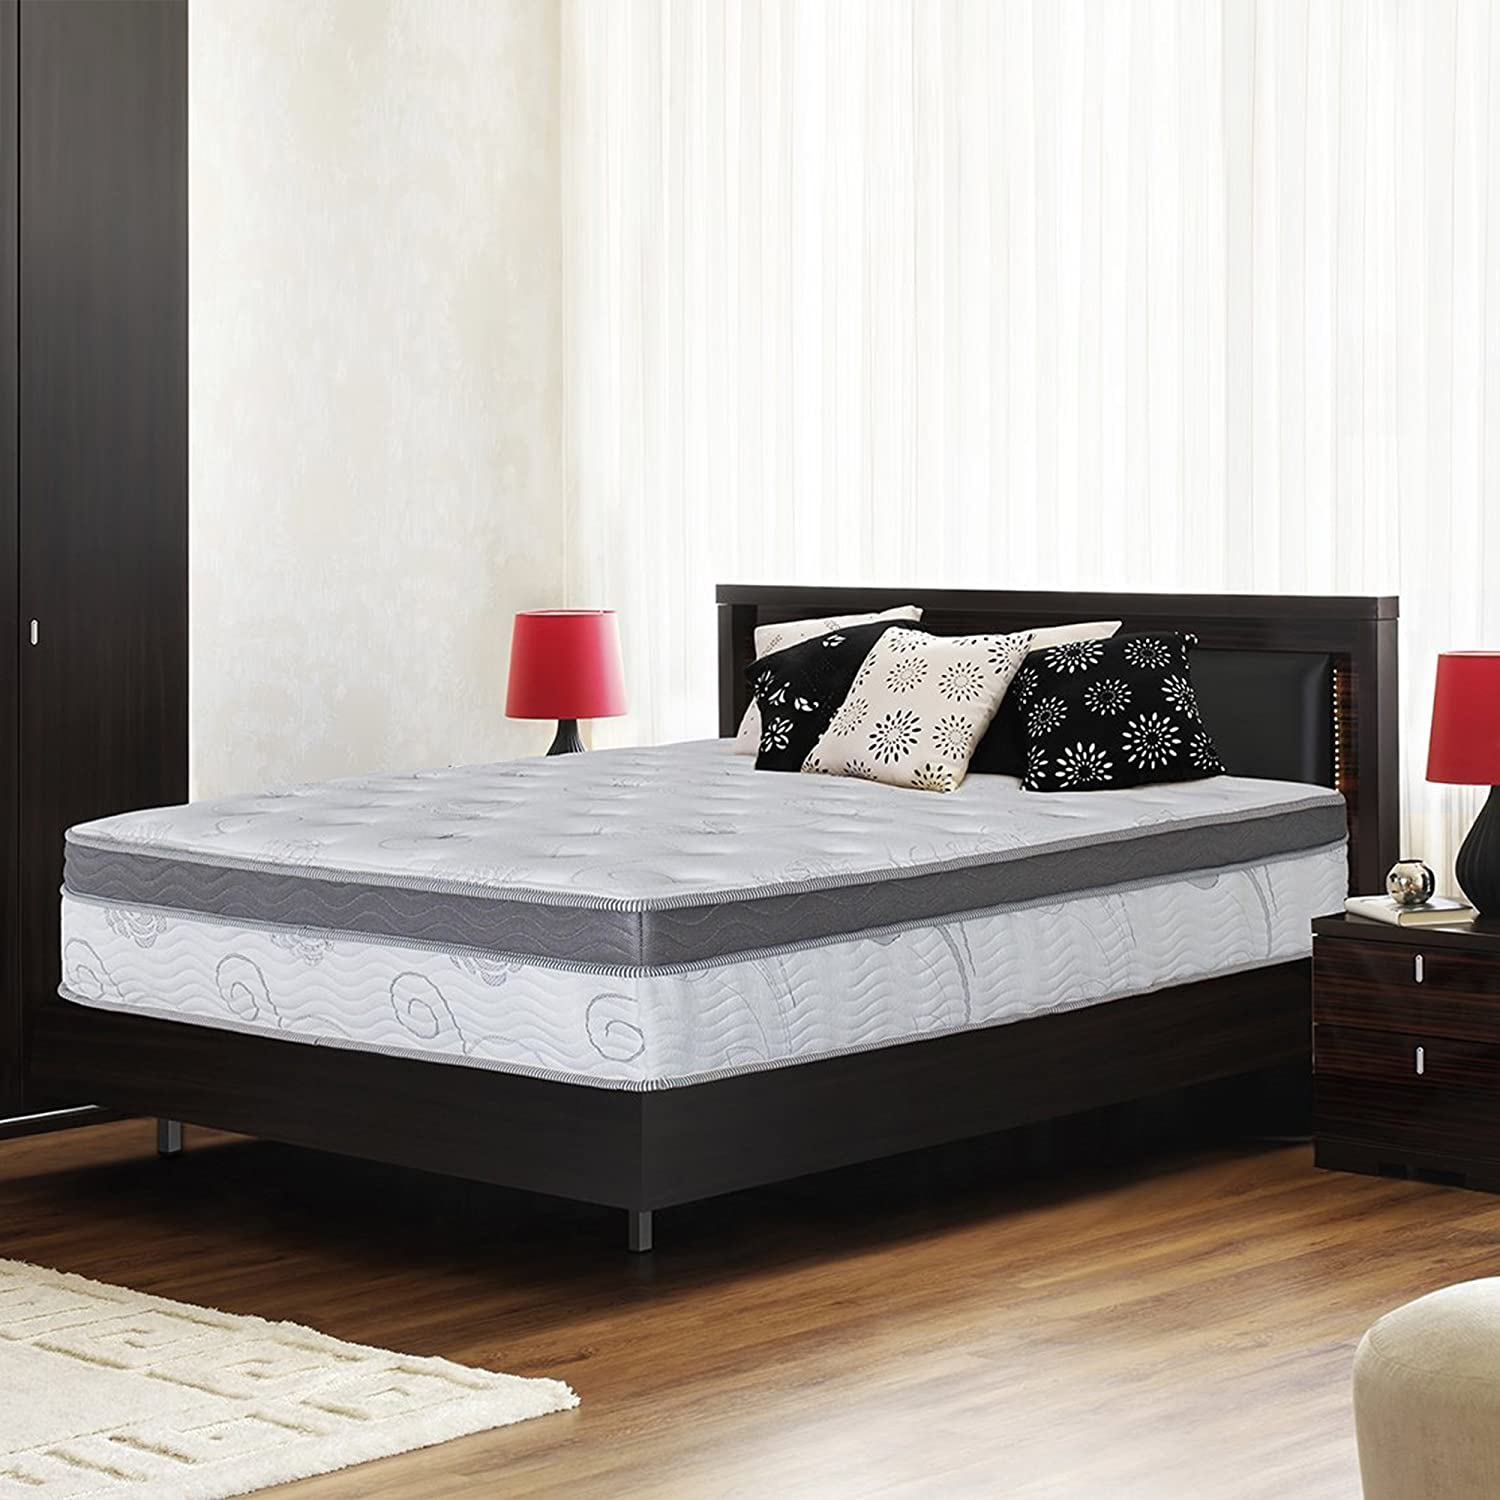 Olee Sleep Hybrid Mattress (Best Hybrid Mattress)